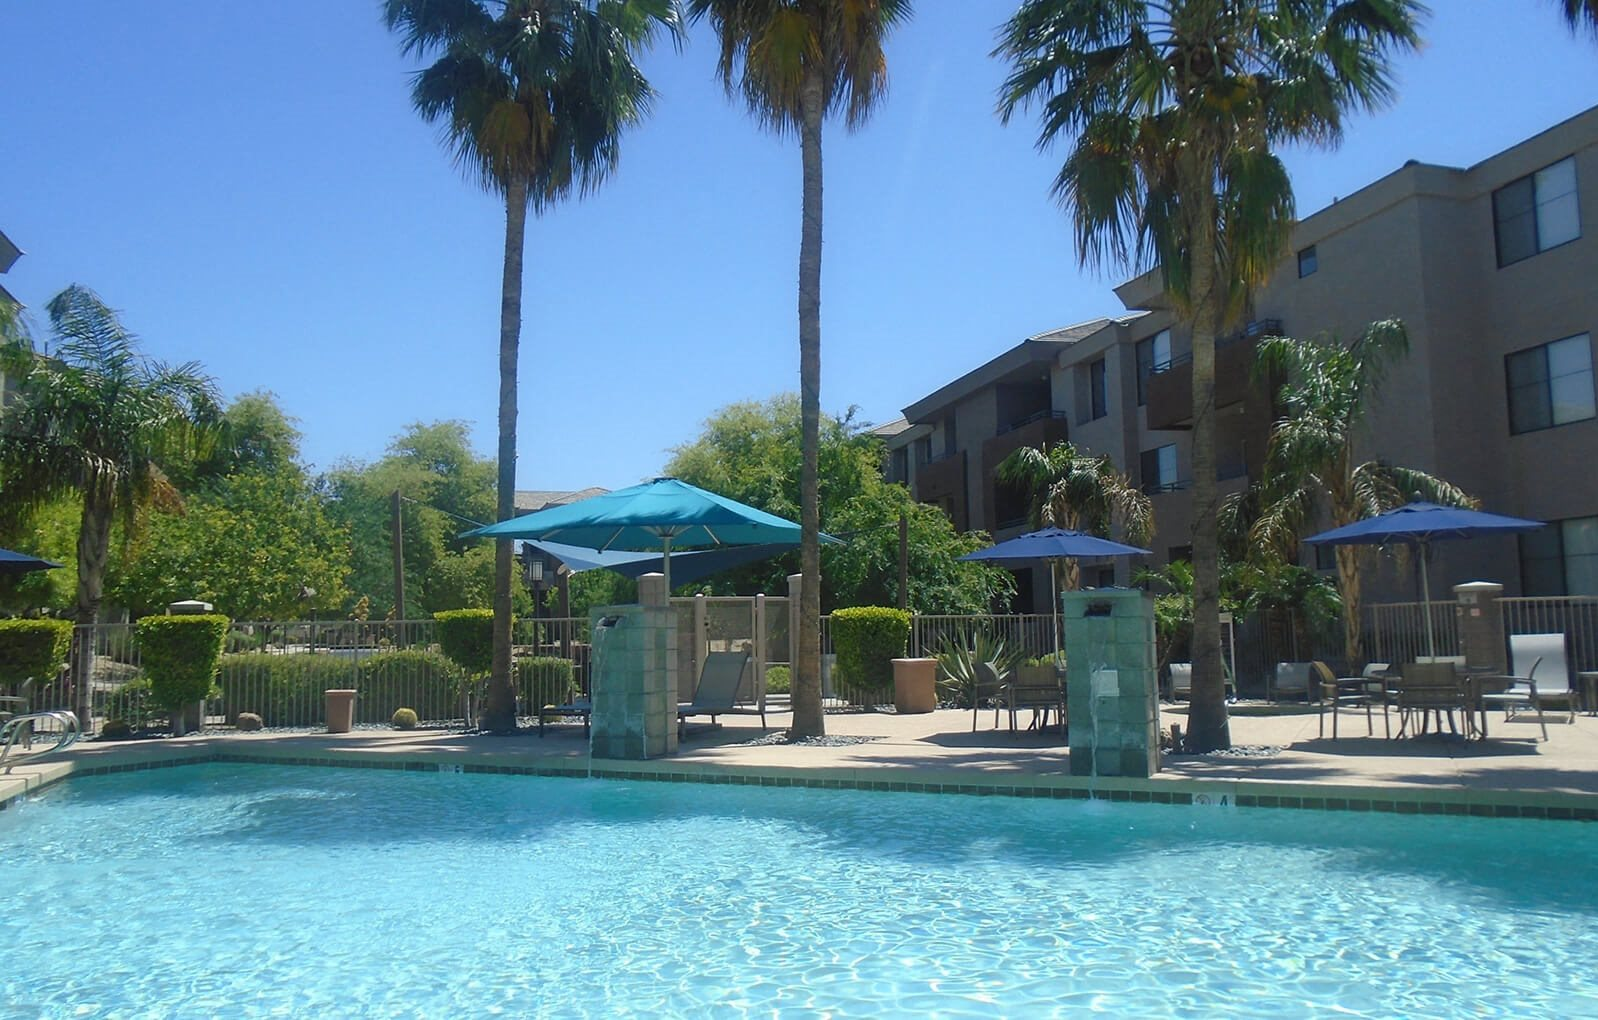 Sparkling Pool at Ascent at Papago Park, Phoenix, Arizona